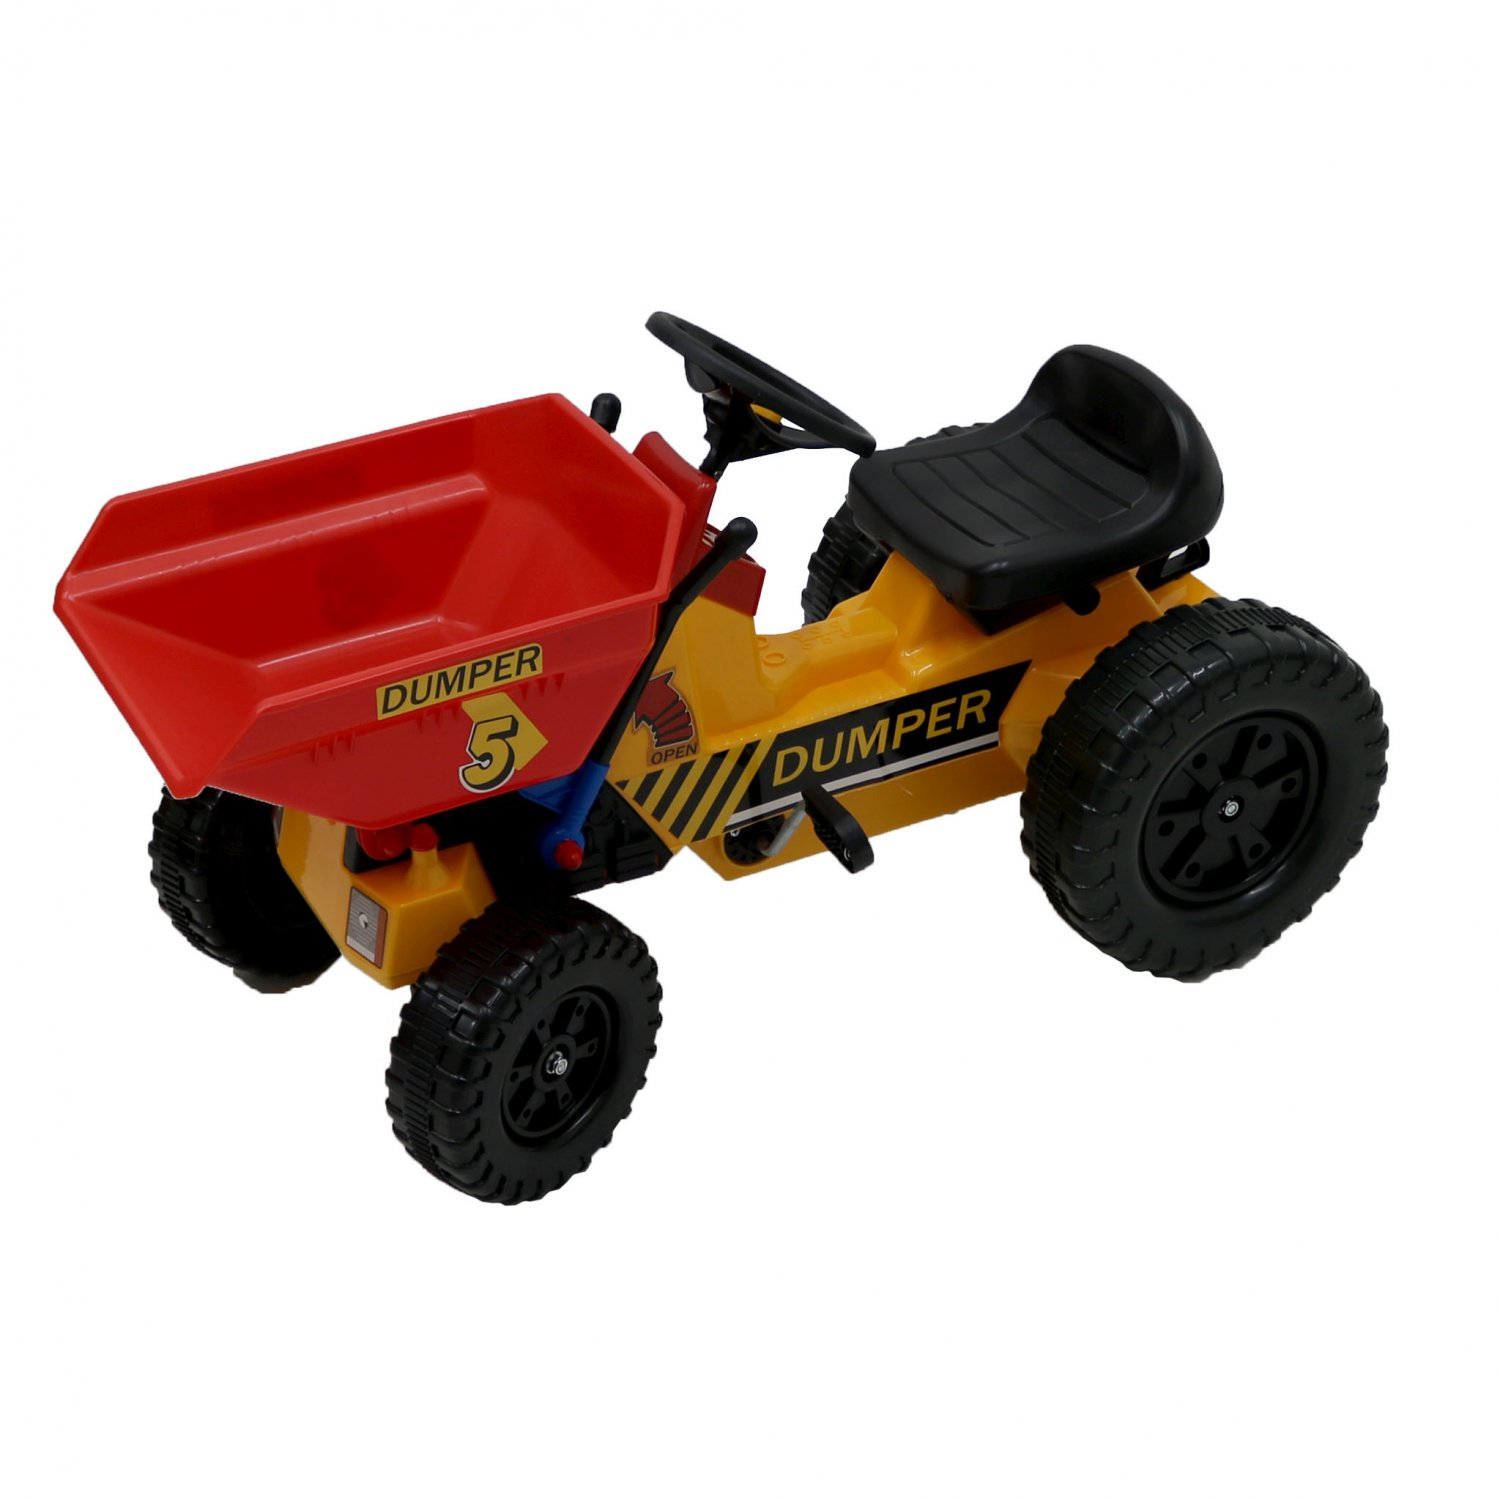 Childrens Pedal Ride on Yellow Super Bucket Dumper Truck Tractor